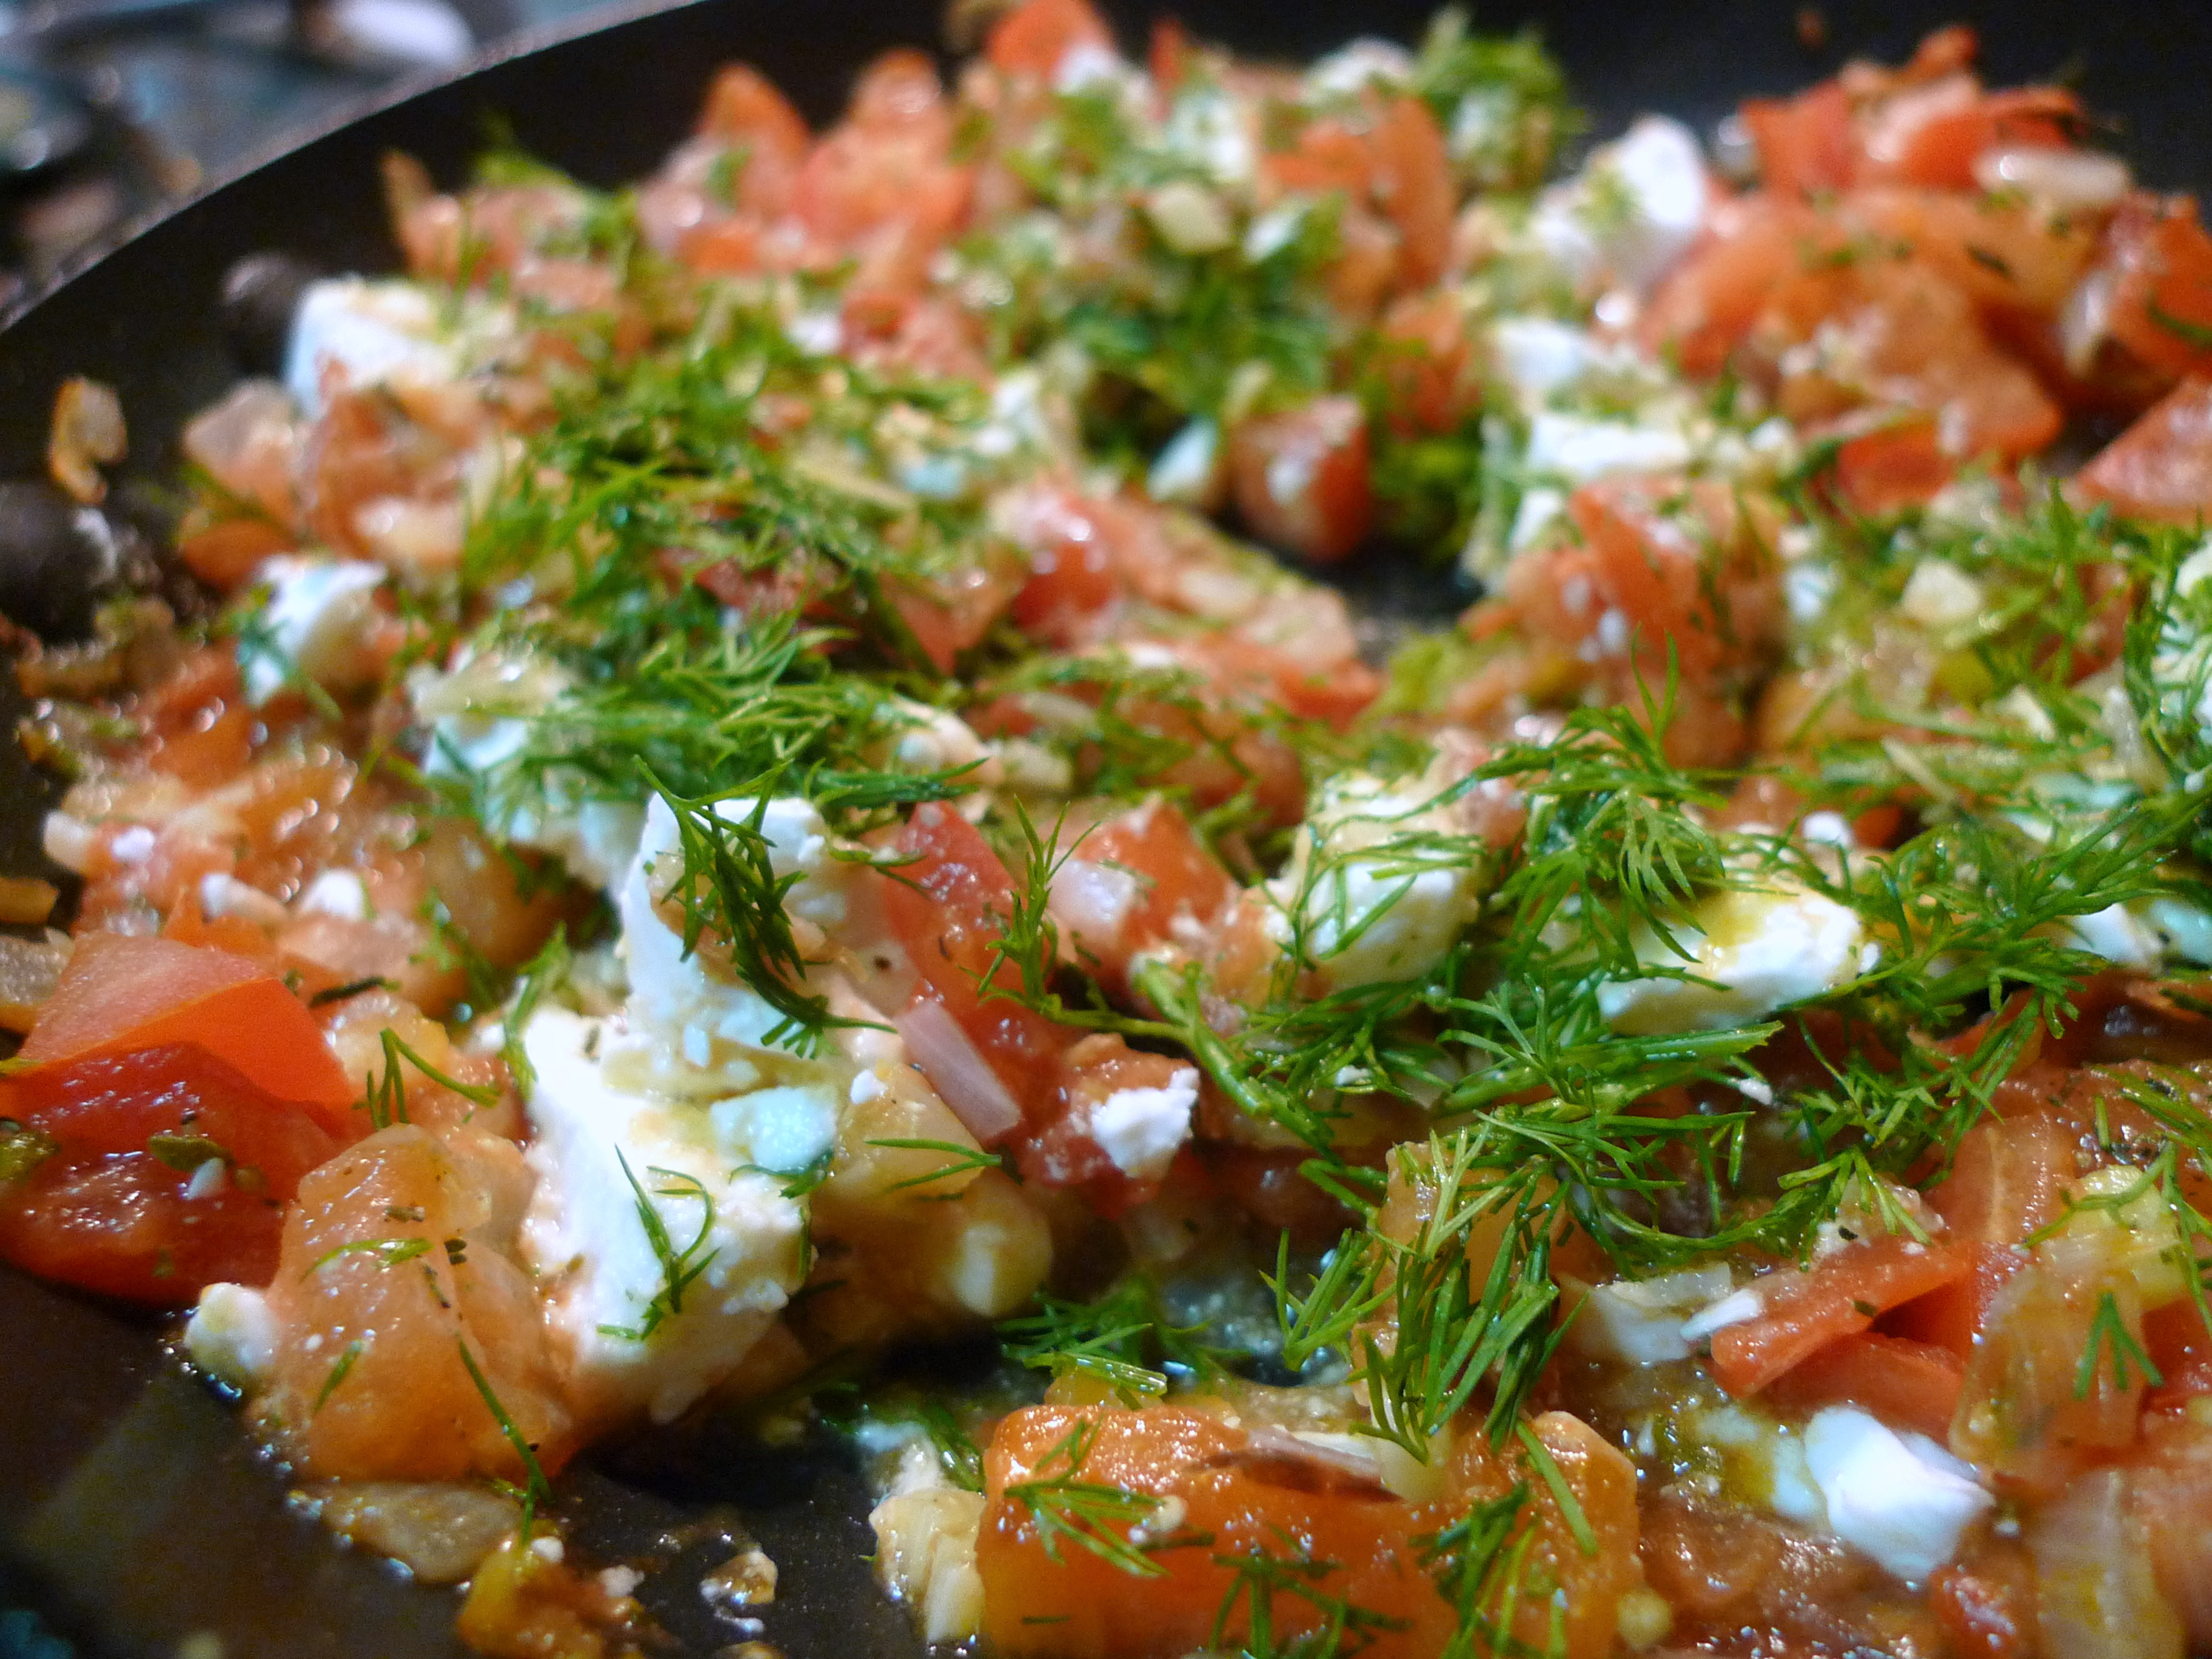 from heat and mix in the fresh herbs and feta